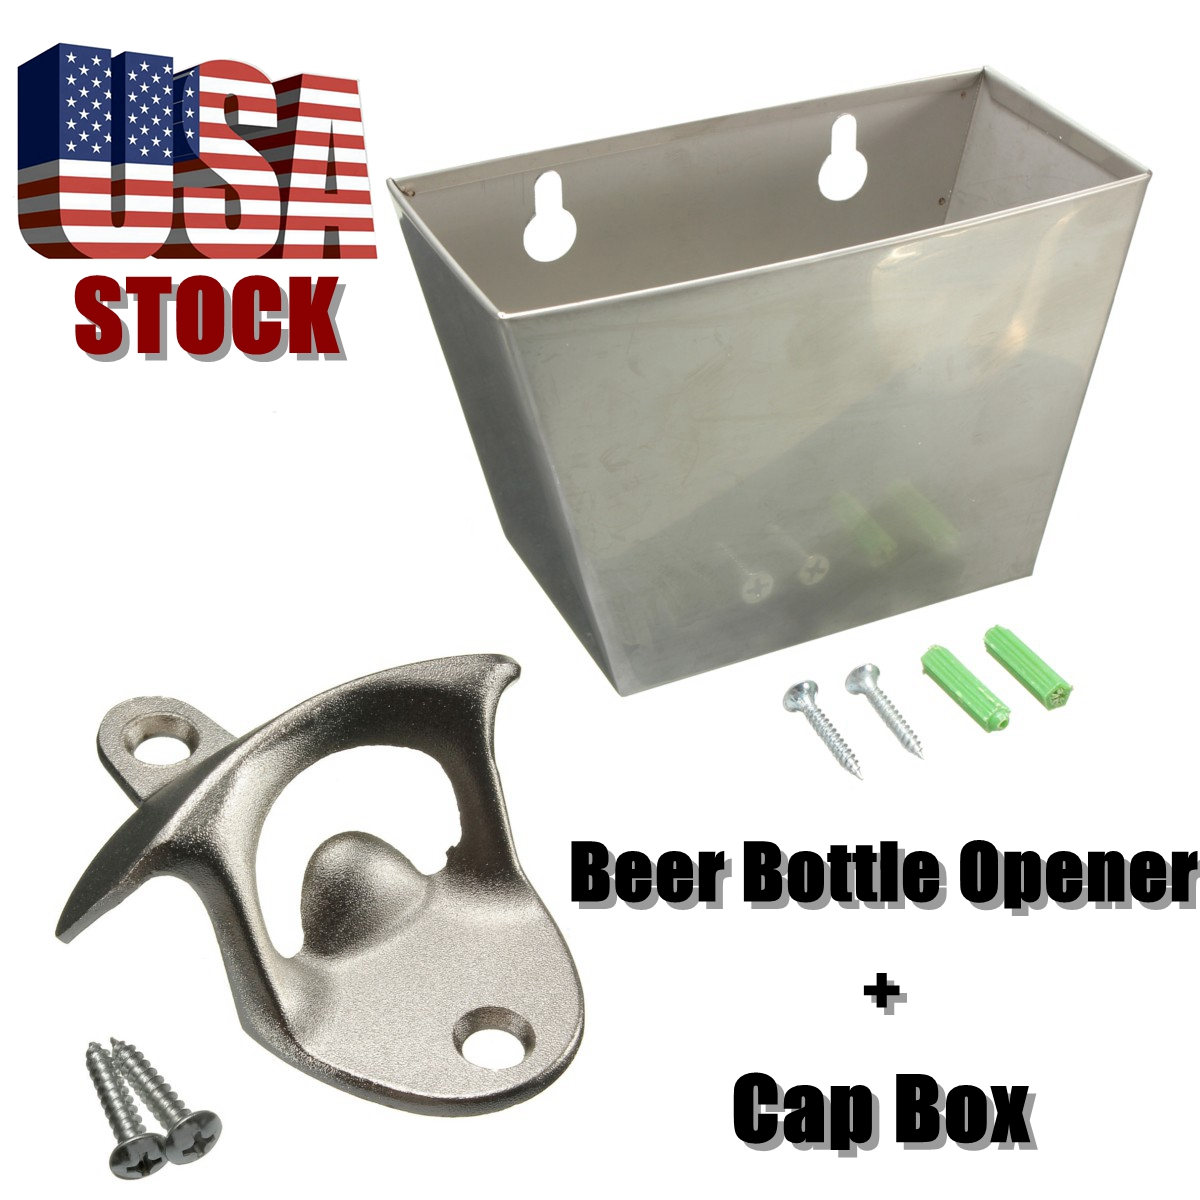 1 Stainless Steel Bottle Opener & 1 Cap Catcher Box Wall Mount Kitchen Bar Beer Coke Wine Bottle Cap Opener Tool Anti-rust w/ Screws